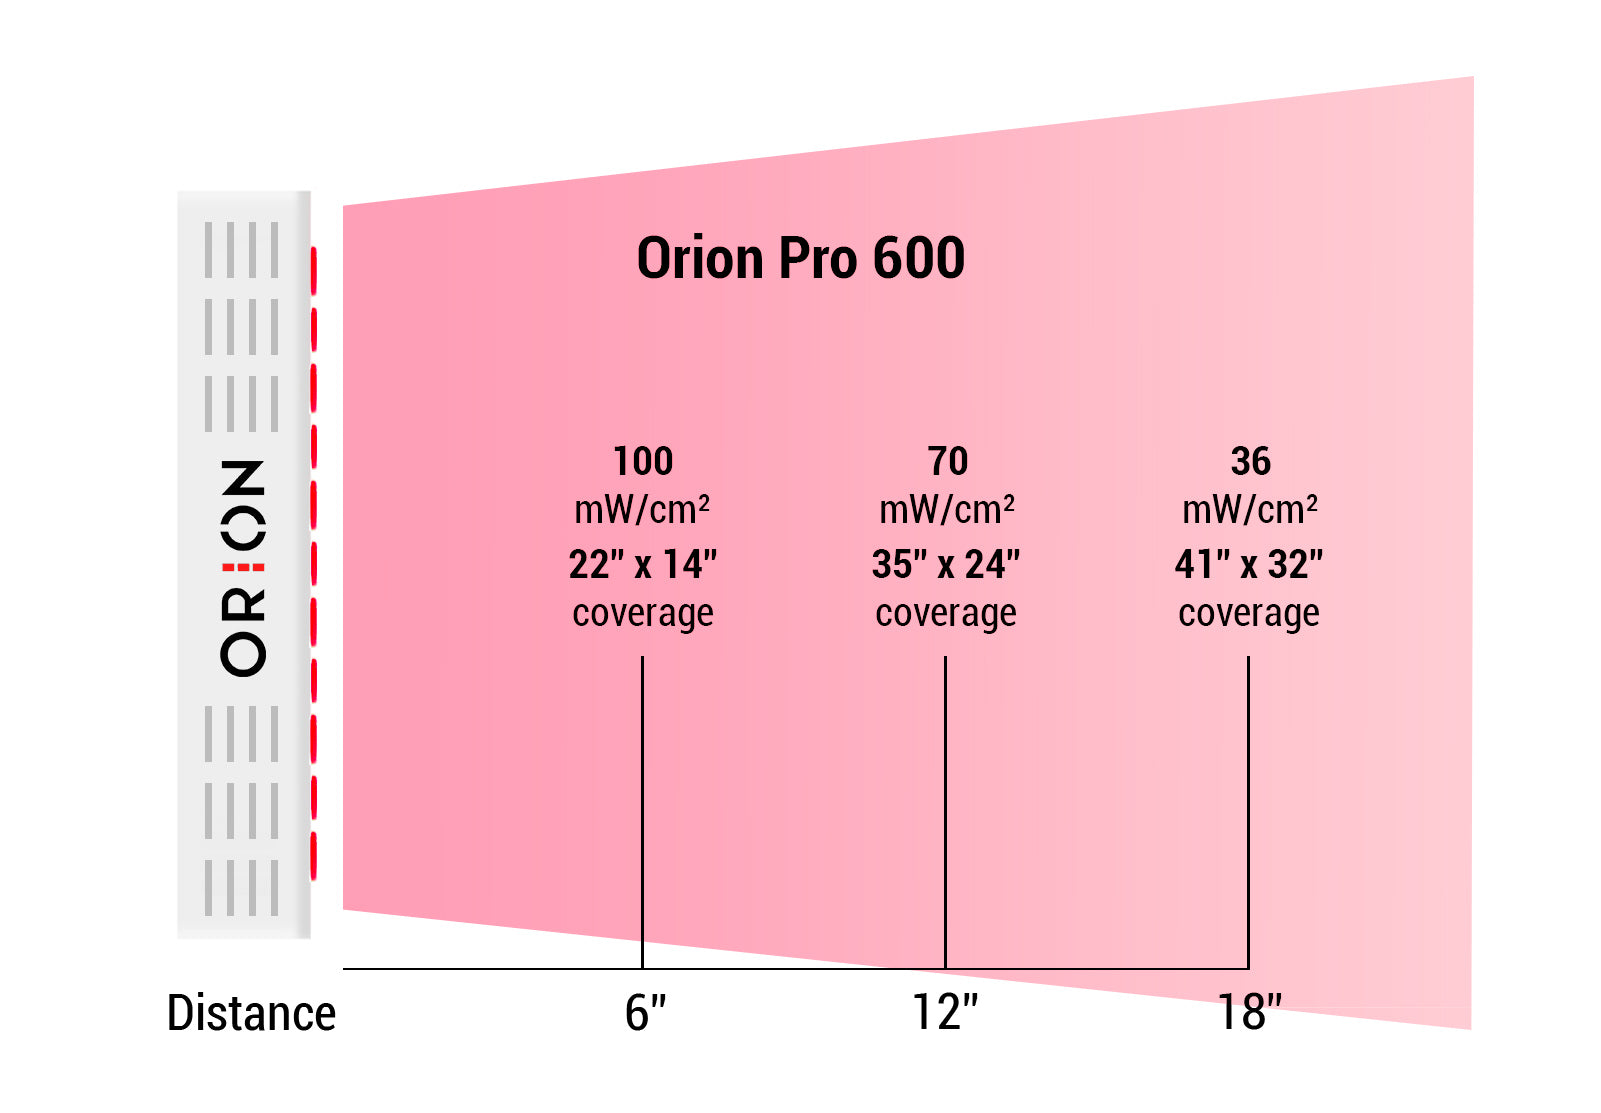 Orion Pro 600 Irradiance levels at 3, 6, 12, and 18 inches. Orion Red Light Therapy.